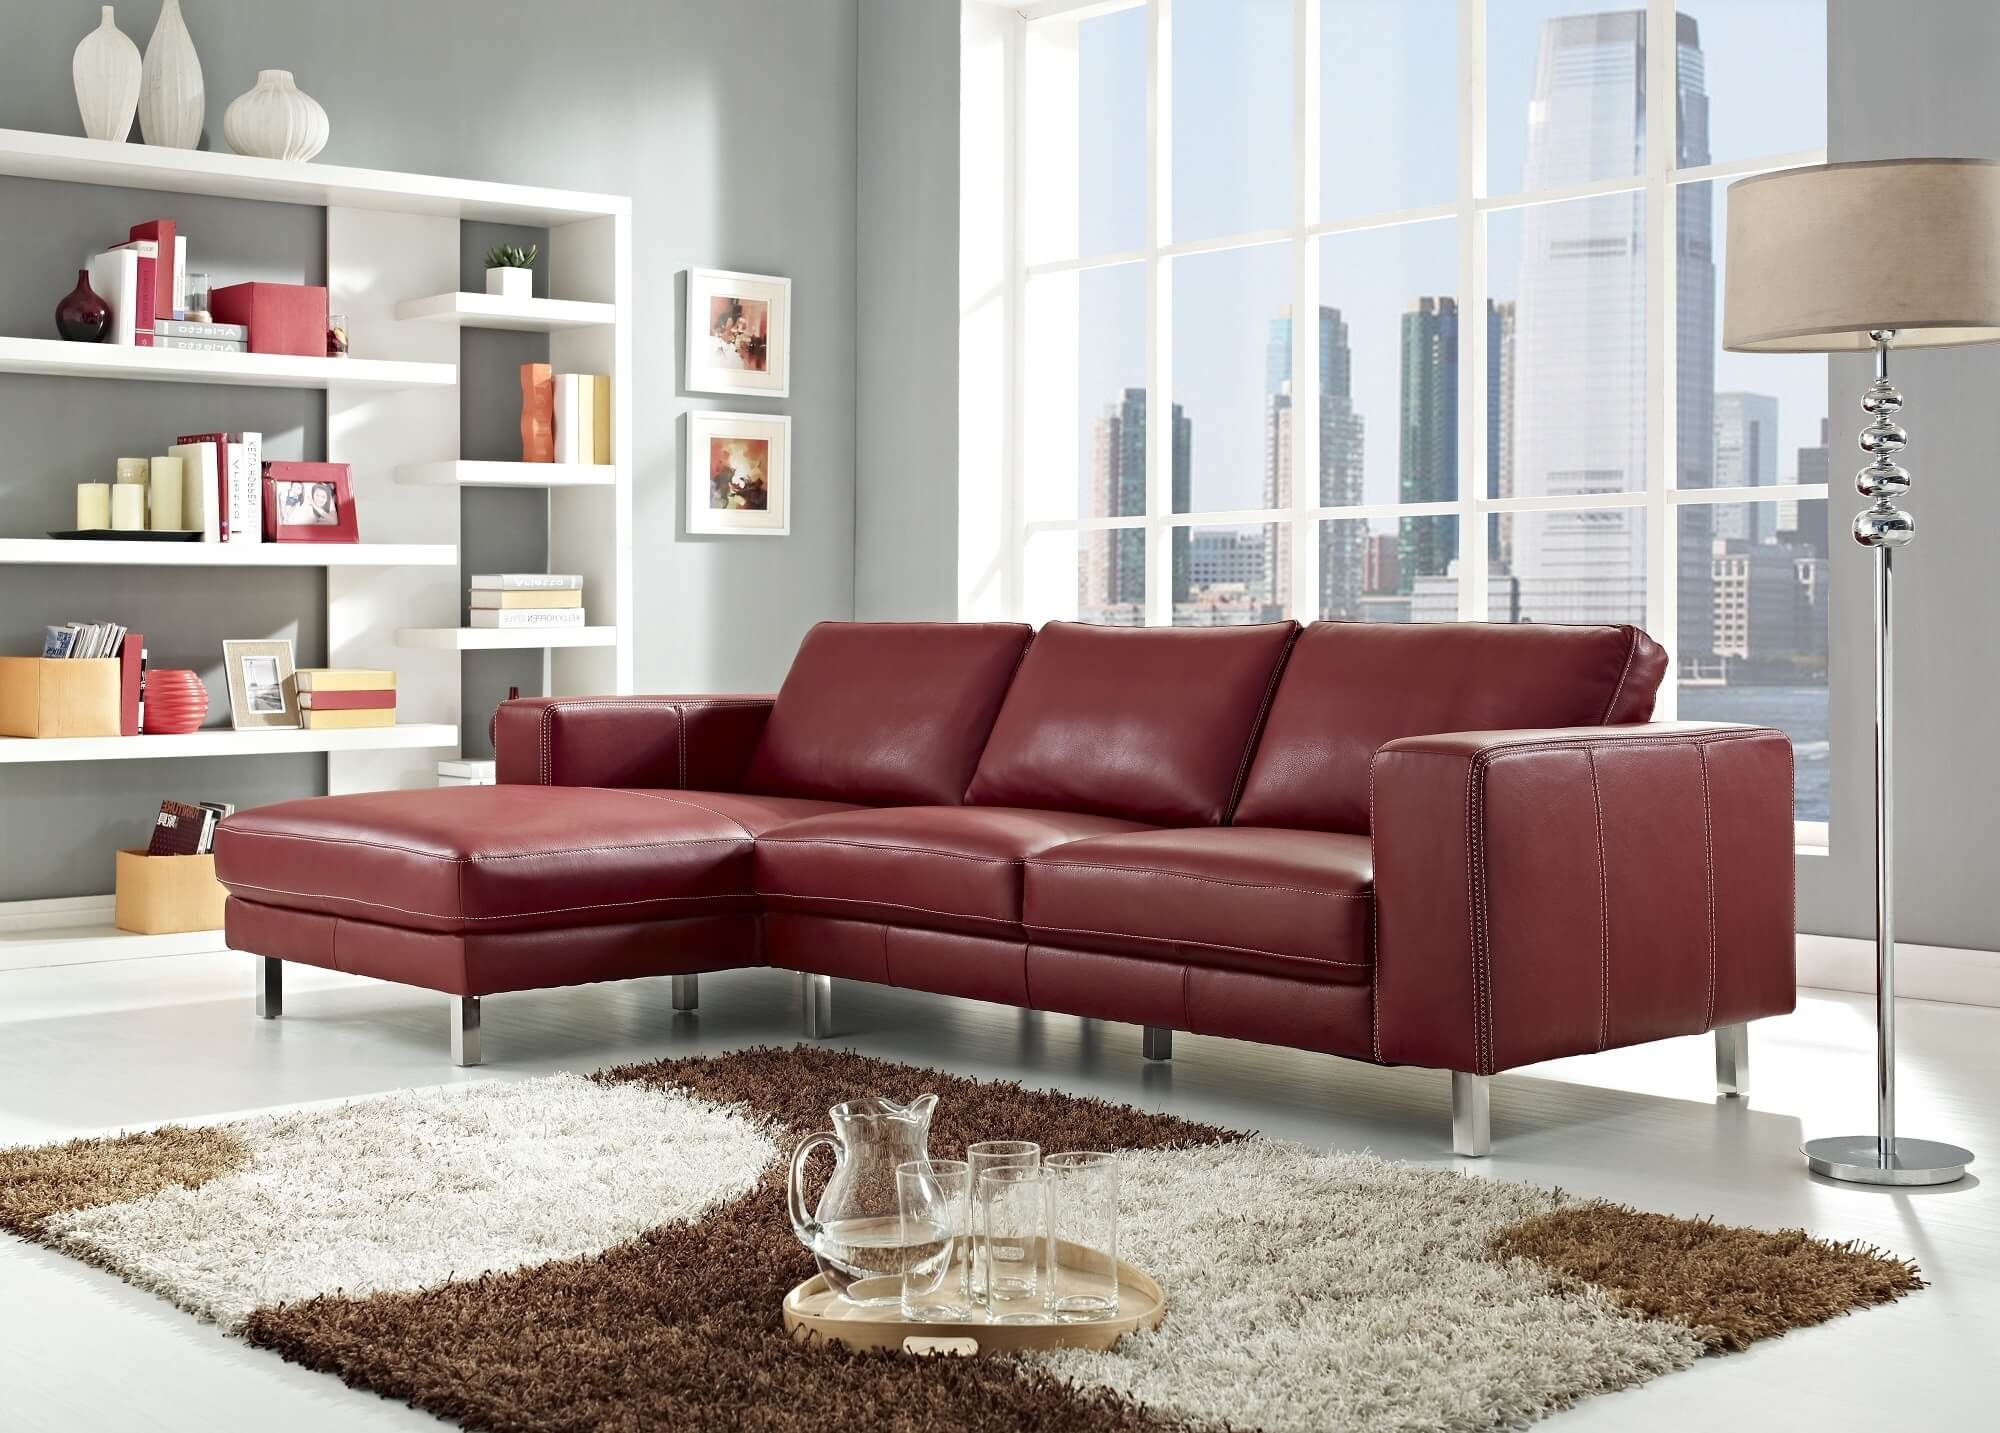 Supreme Chaise Lear Sofa Toronto This Red Lear Sofa Is Made A Solid Wood Chromedstainless Steel Red Sectional Sofas Lear Sofa houzz-02 Modern Leather Sofa